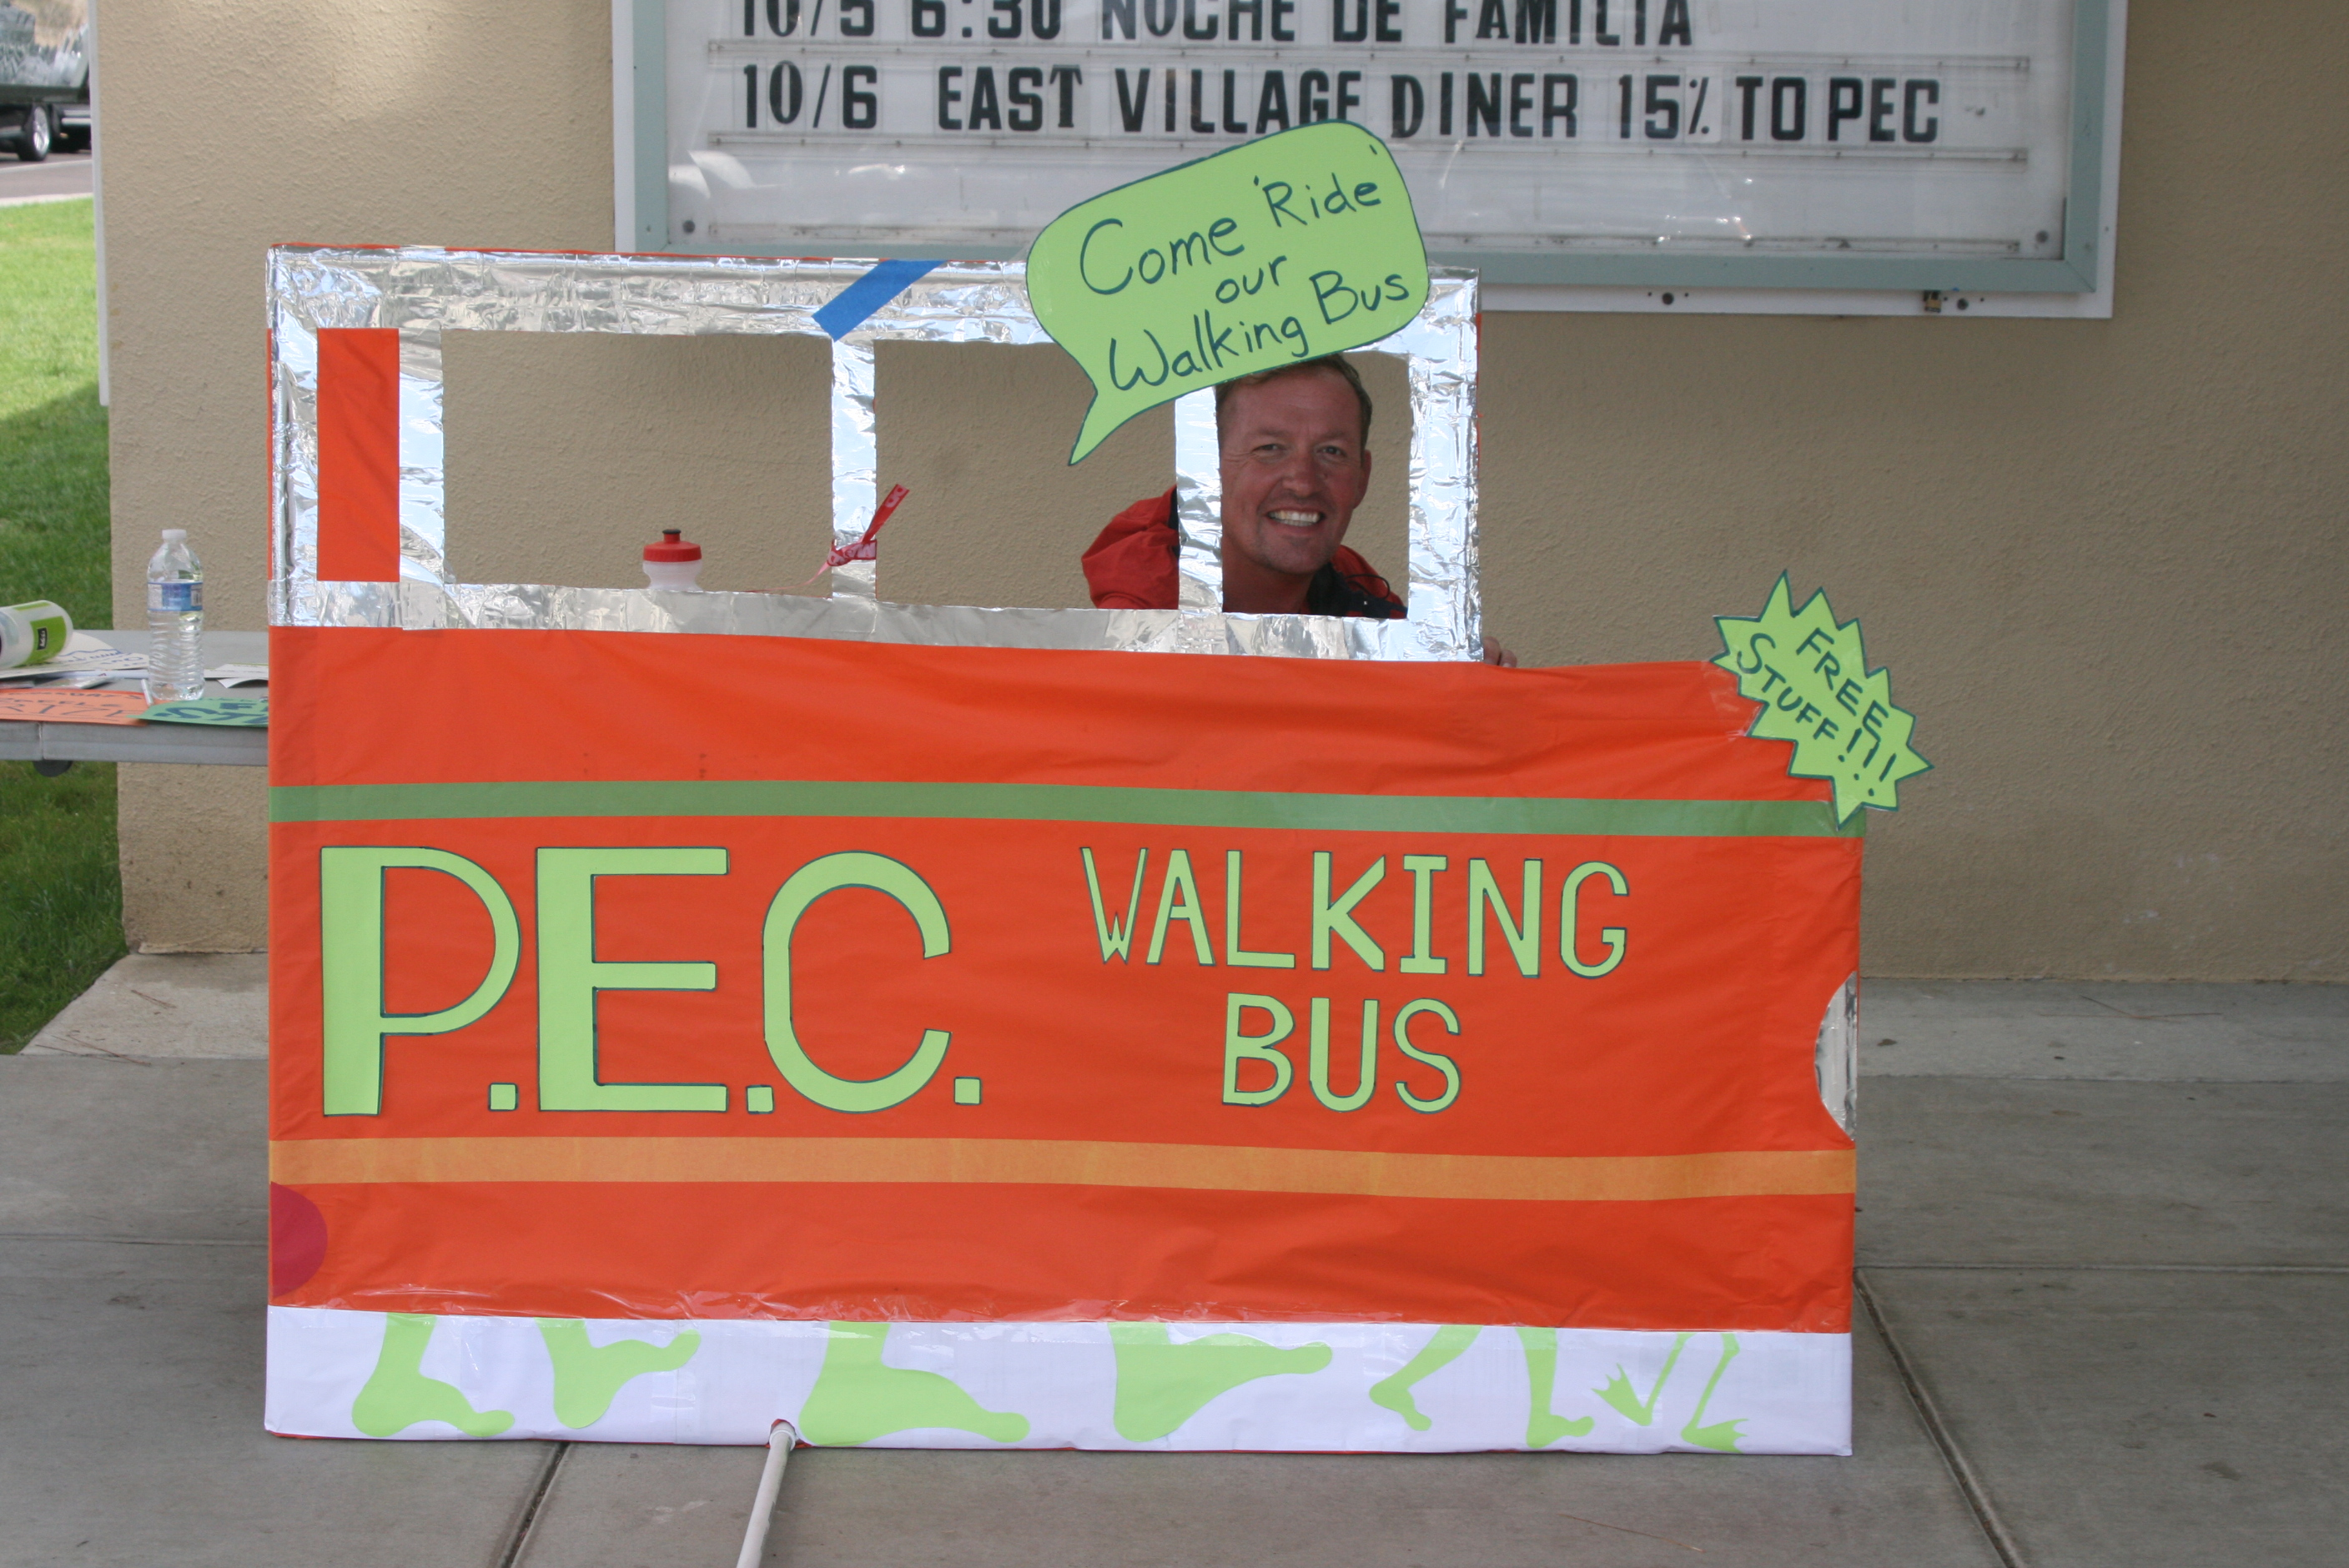 PEC Walking Bus is back again!